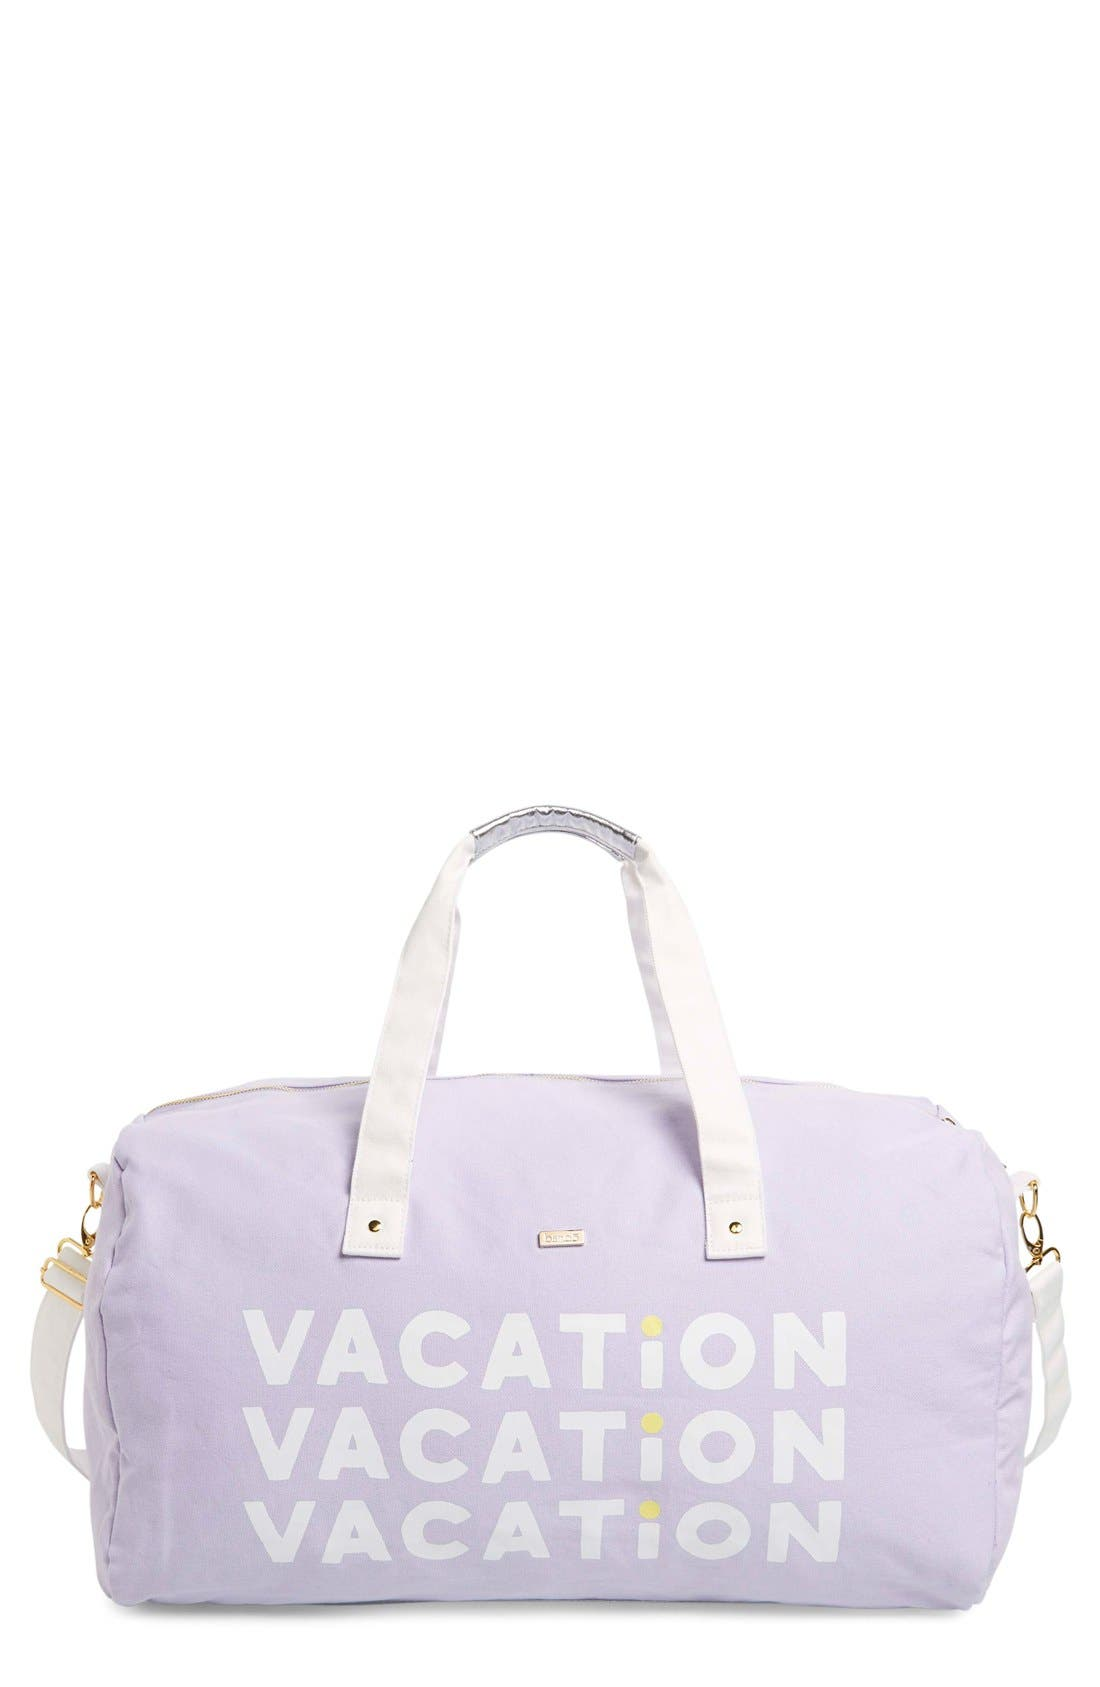 'Vacation Vacation Vacation' Canvas Duffel,                         Main,                         color, Purple